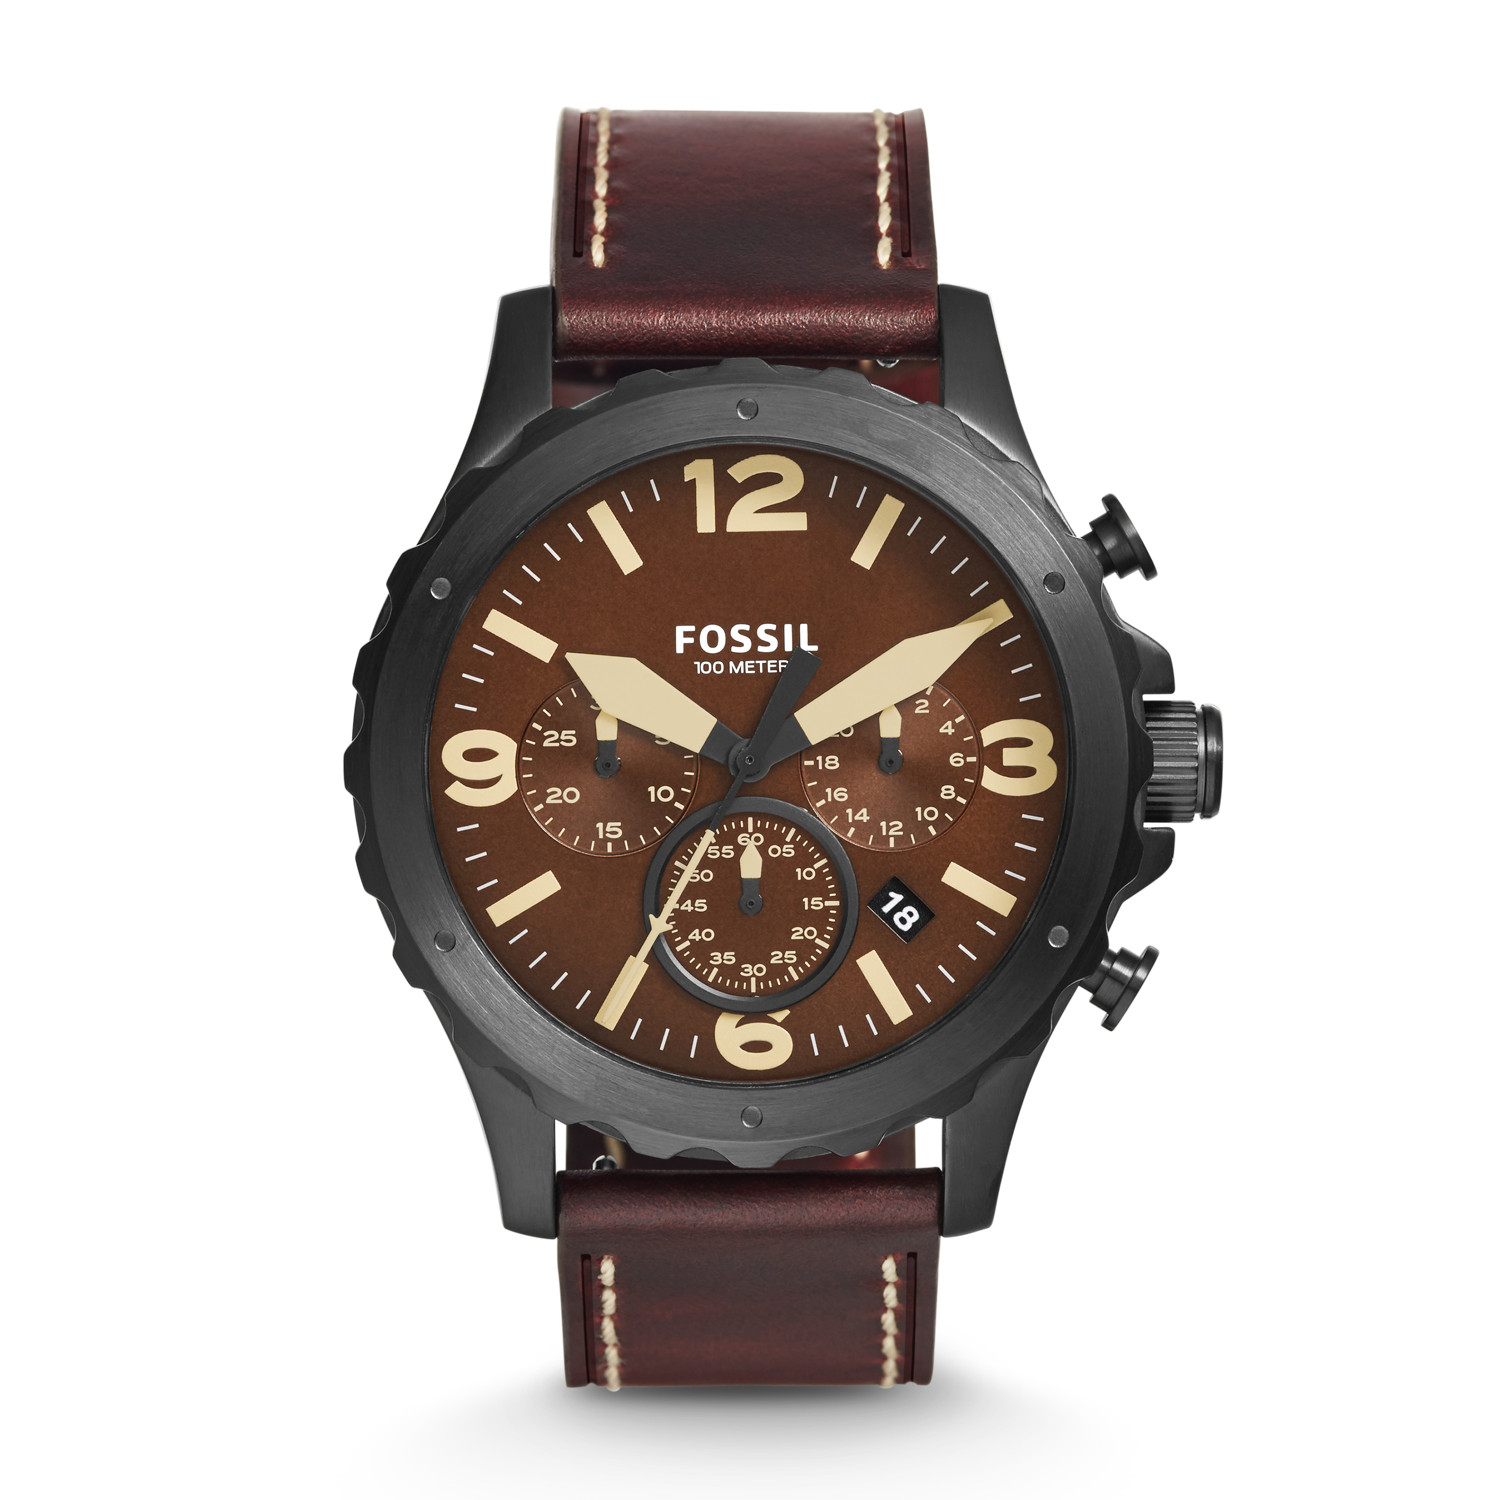 FOSSIL New Update